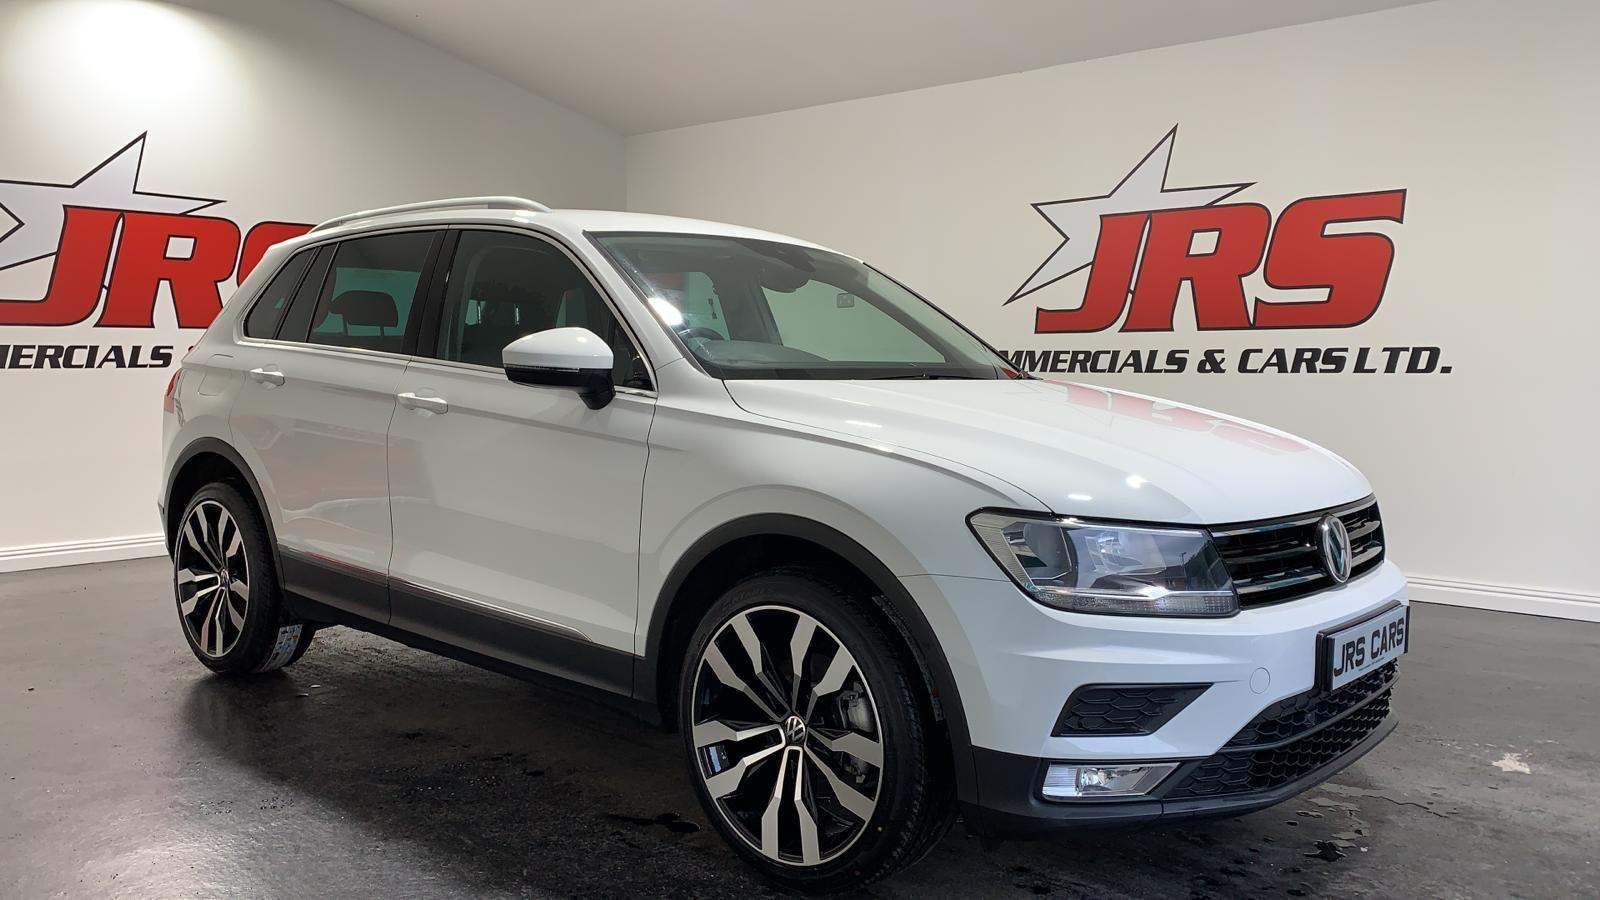 2017 VOLKSWAGEN Tiguan 2.0 TDI BlueMotion Tech SE Navigation DSG (s/s) Diesel Automatic **Sat Nav-Privacy Glass** – J R S Commercials And Cars Dungannon full